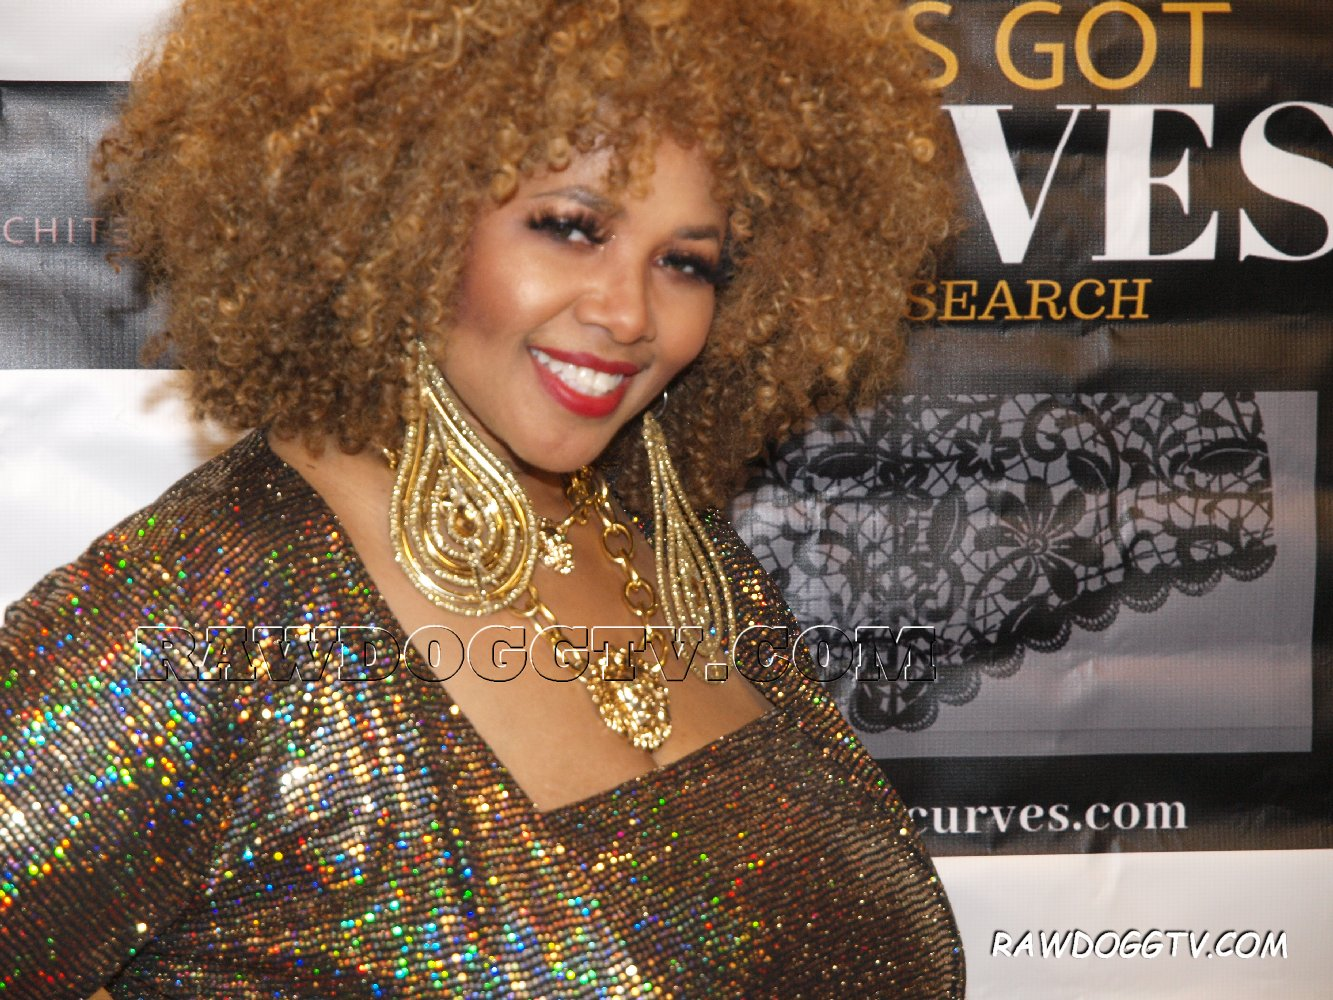 Whos Got Curves REALITY TV SHOW Atlanta Photos-HOLLYWOOD SOUTH PRESENTS httpsrawdoggtv (5)